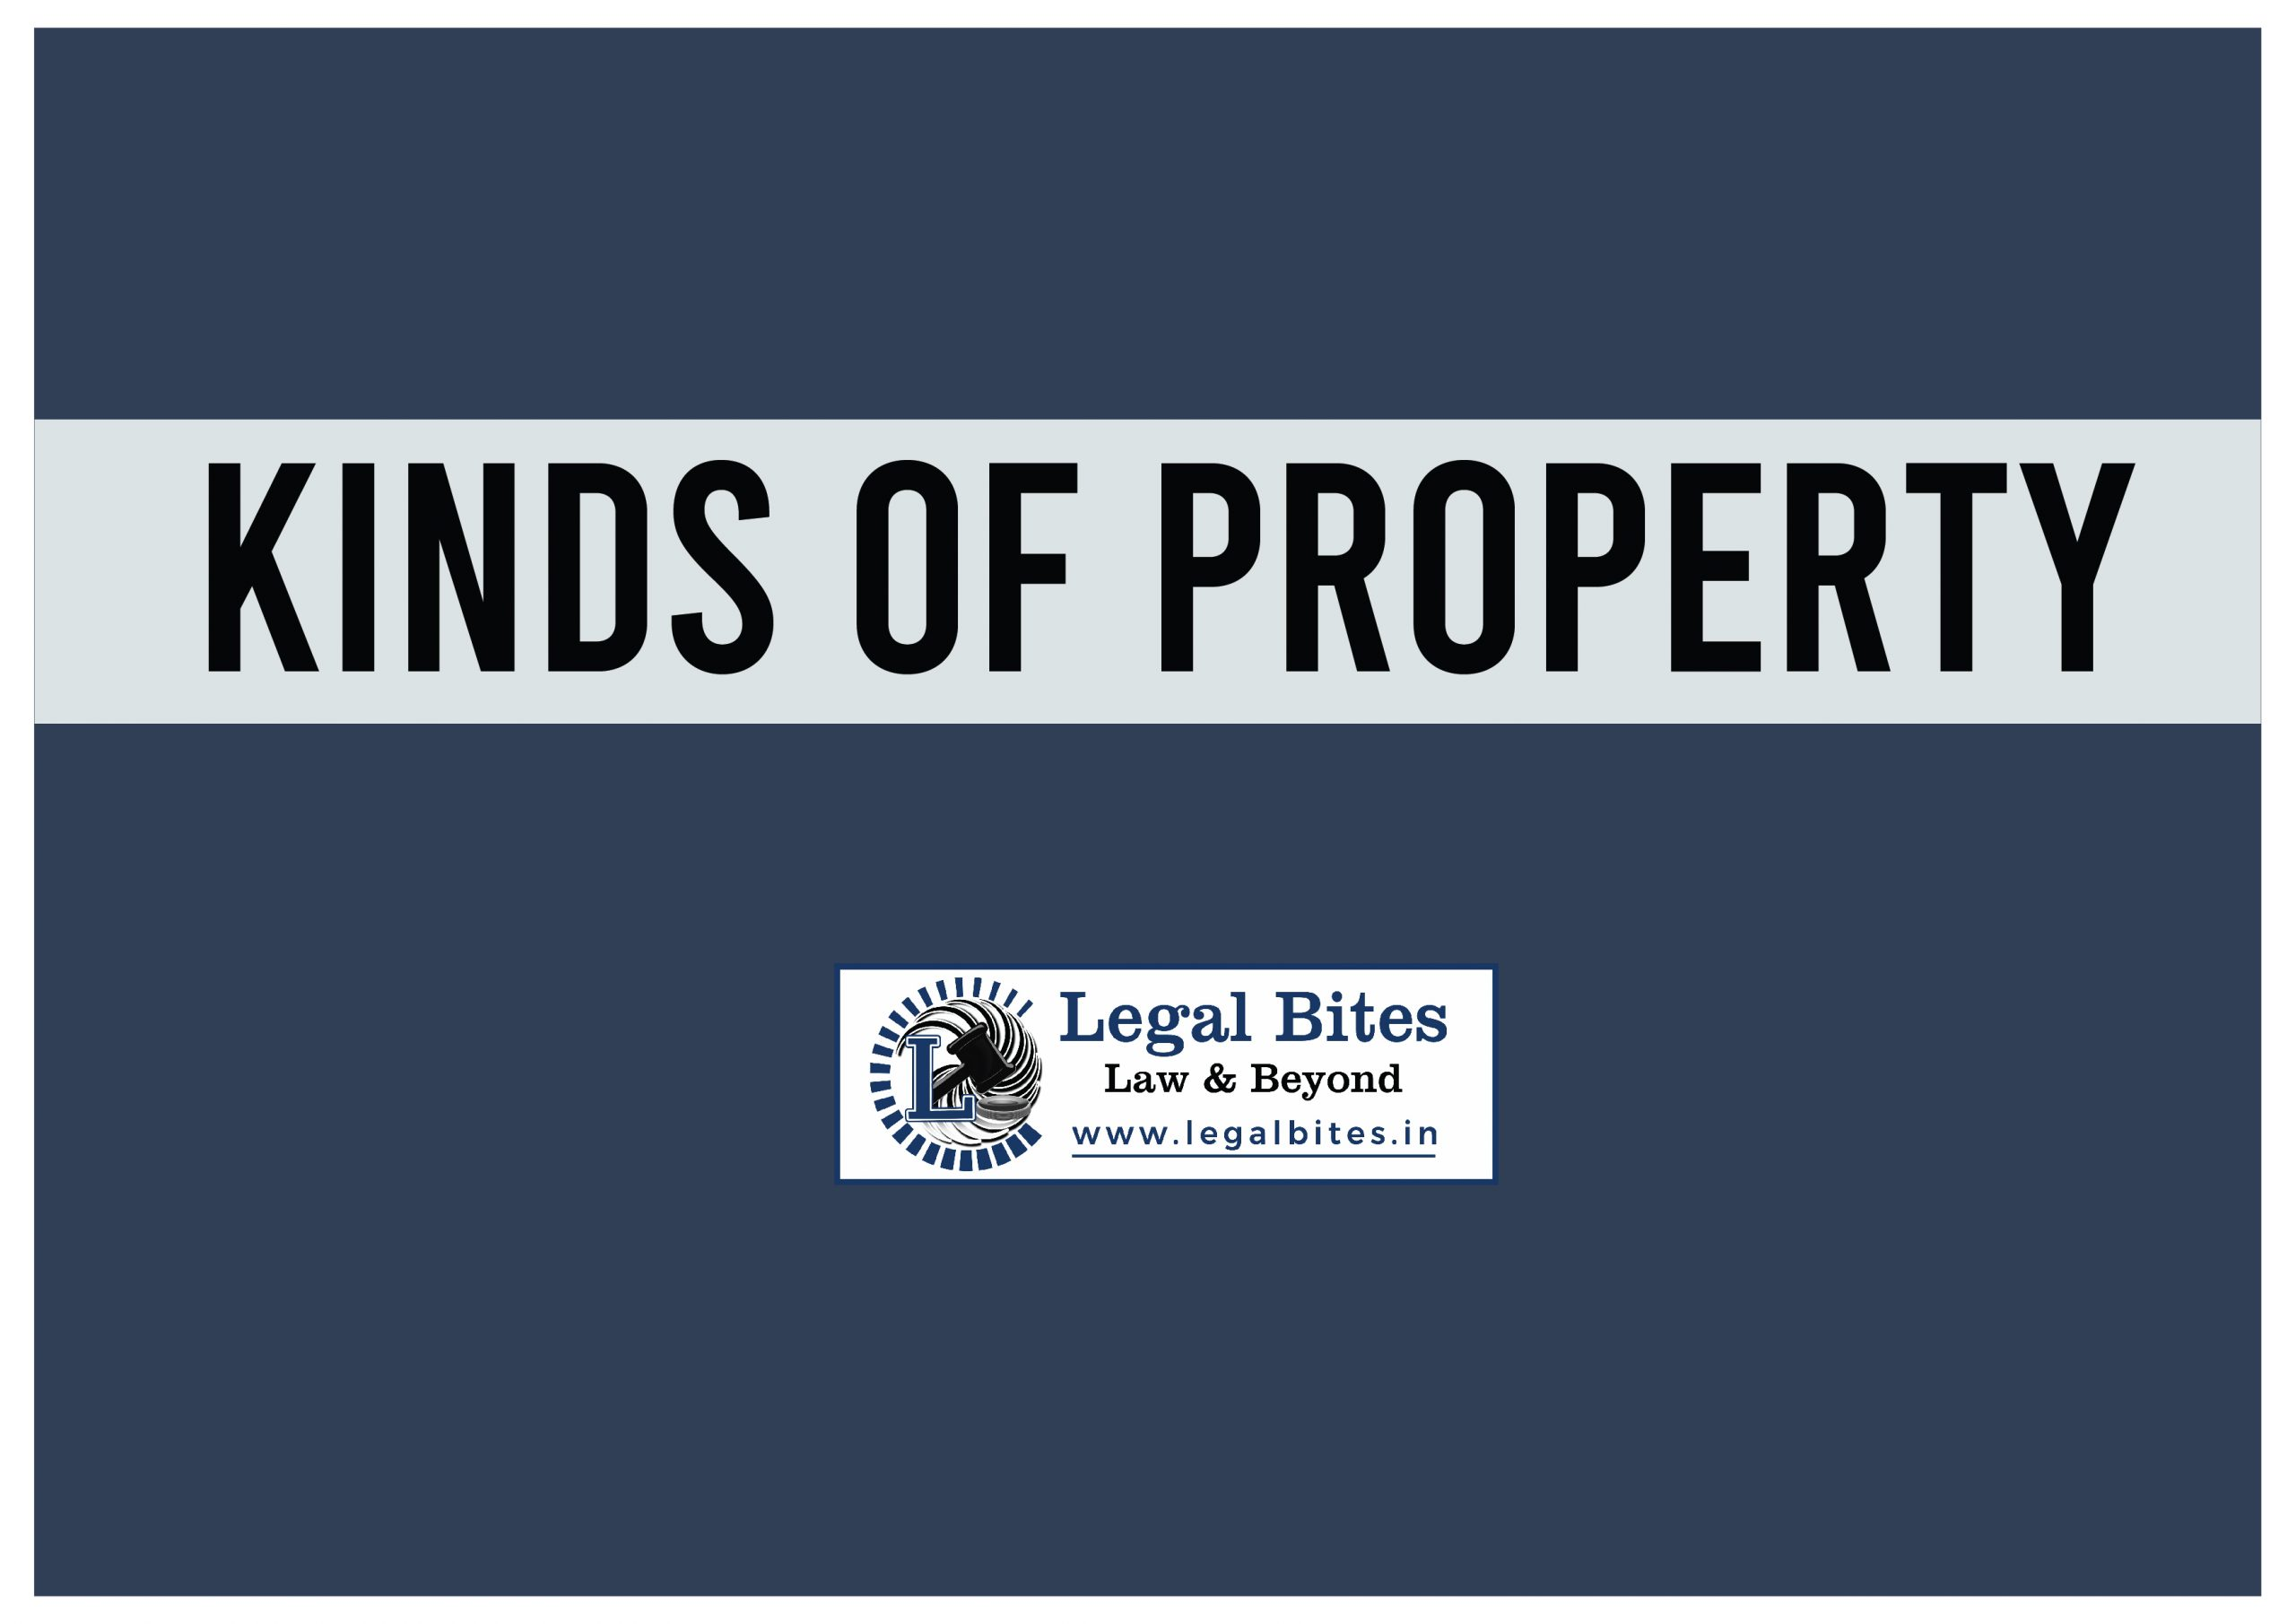 Kinds of Property